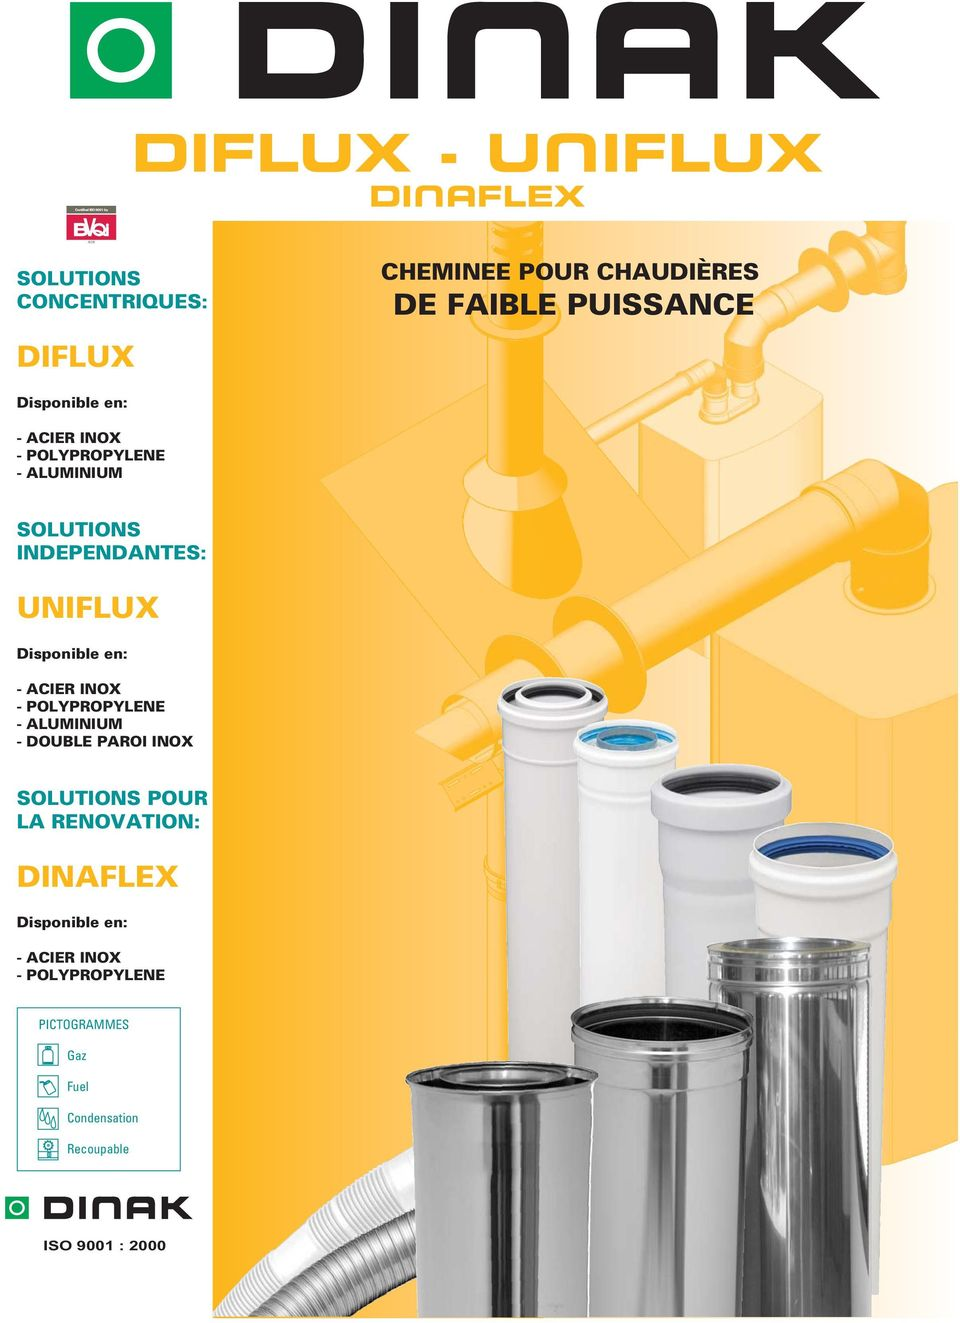 UNIFLUX Disponible en: - CIER INOX - POLYPROPYLENE - LUMINIUM - DOUBLE PROI INOX SOLUTIONS POUR L